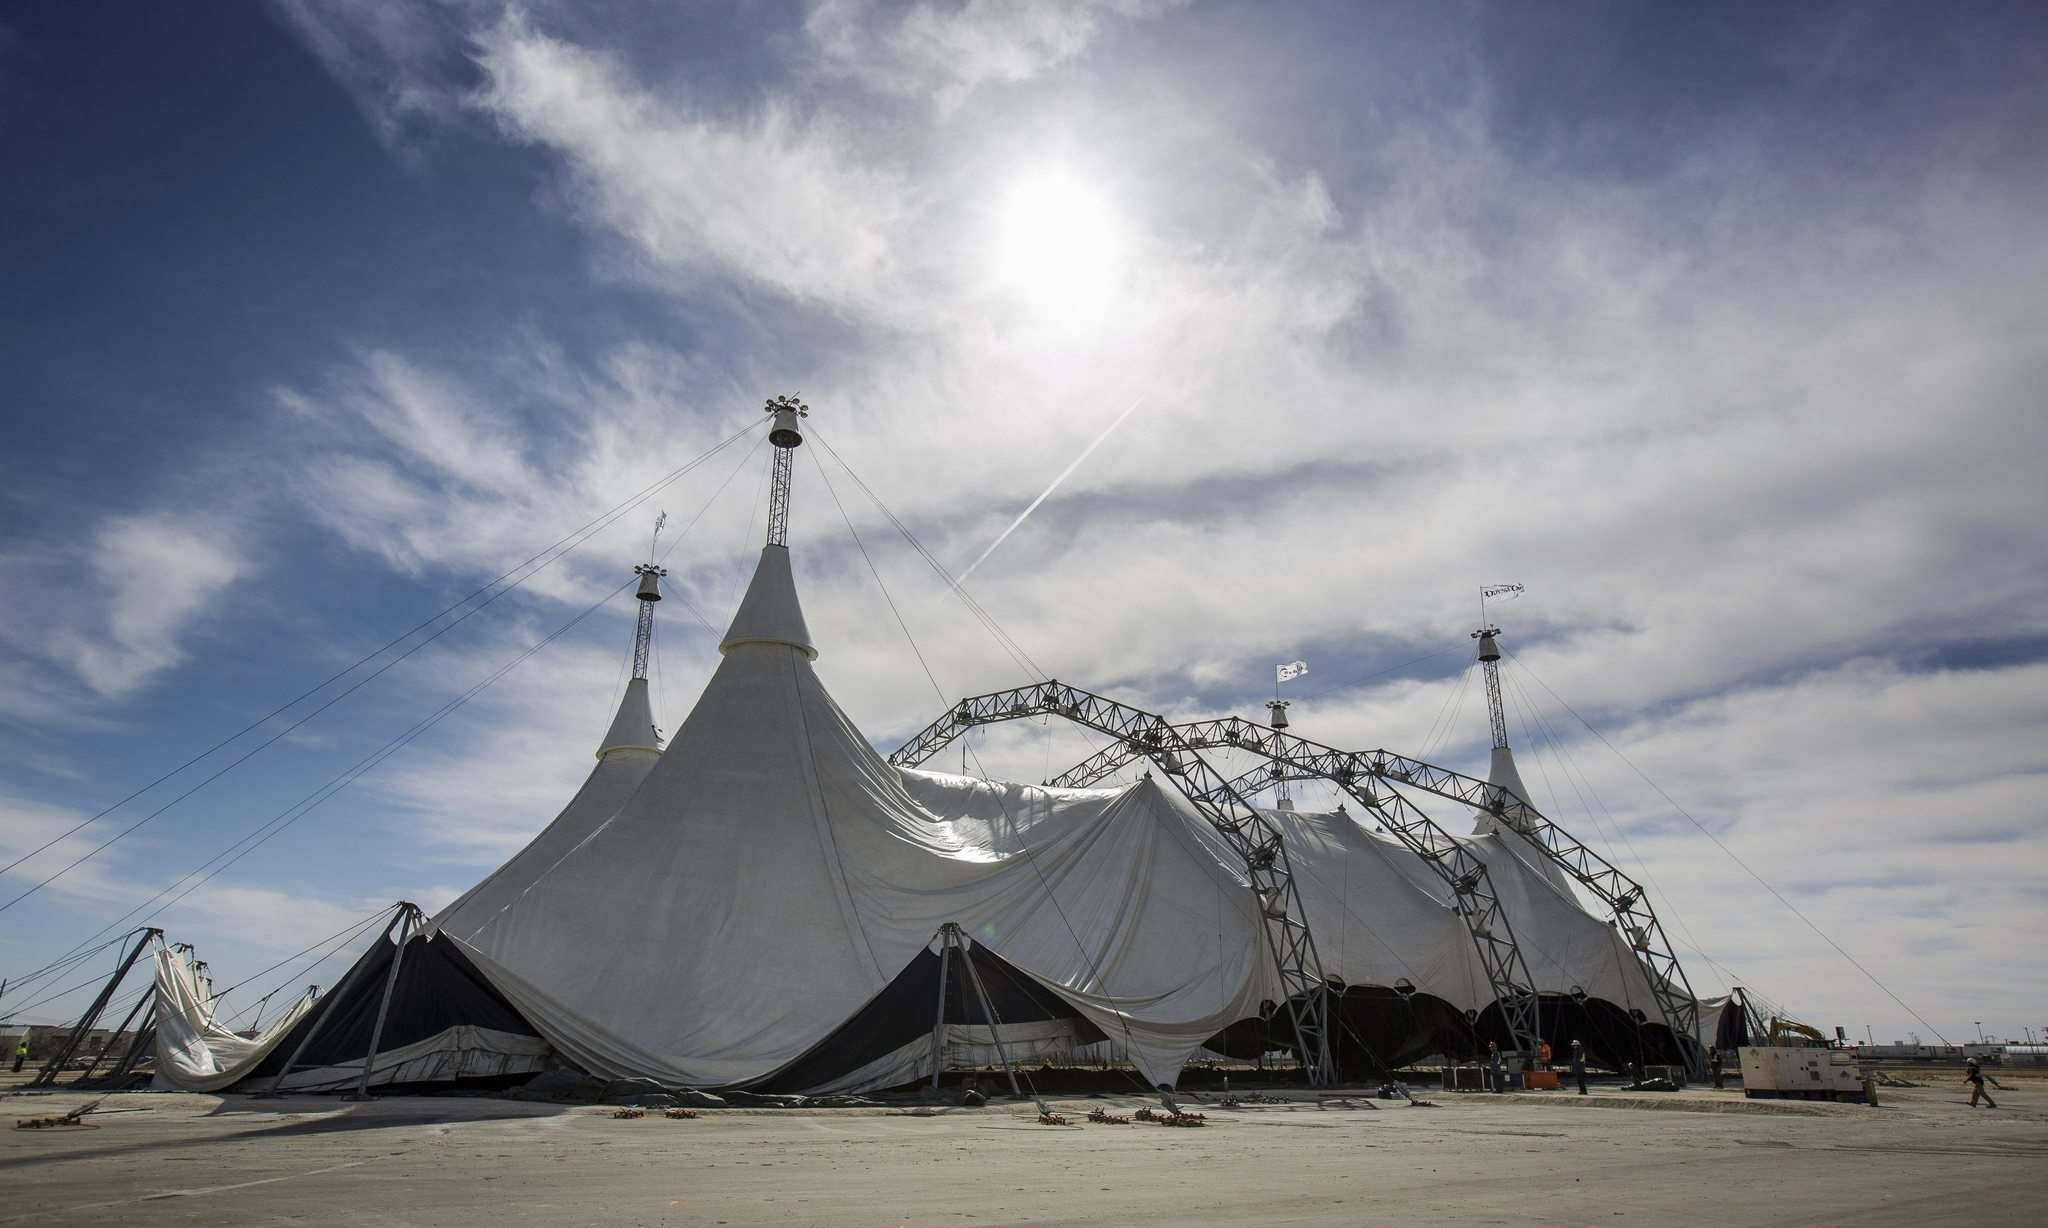 The White Big Top at the Cavalia Odysseo site Tuesday morning.